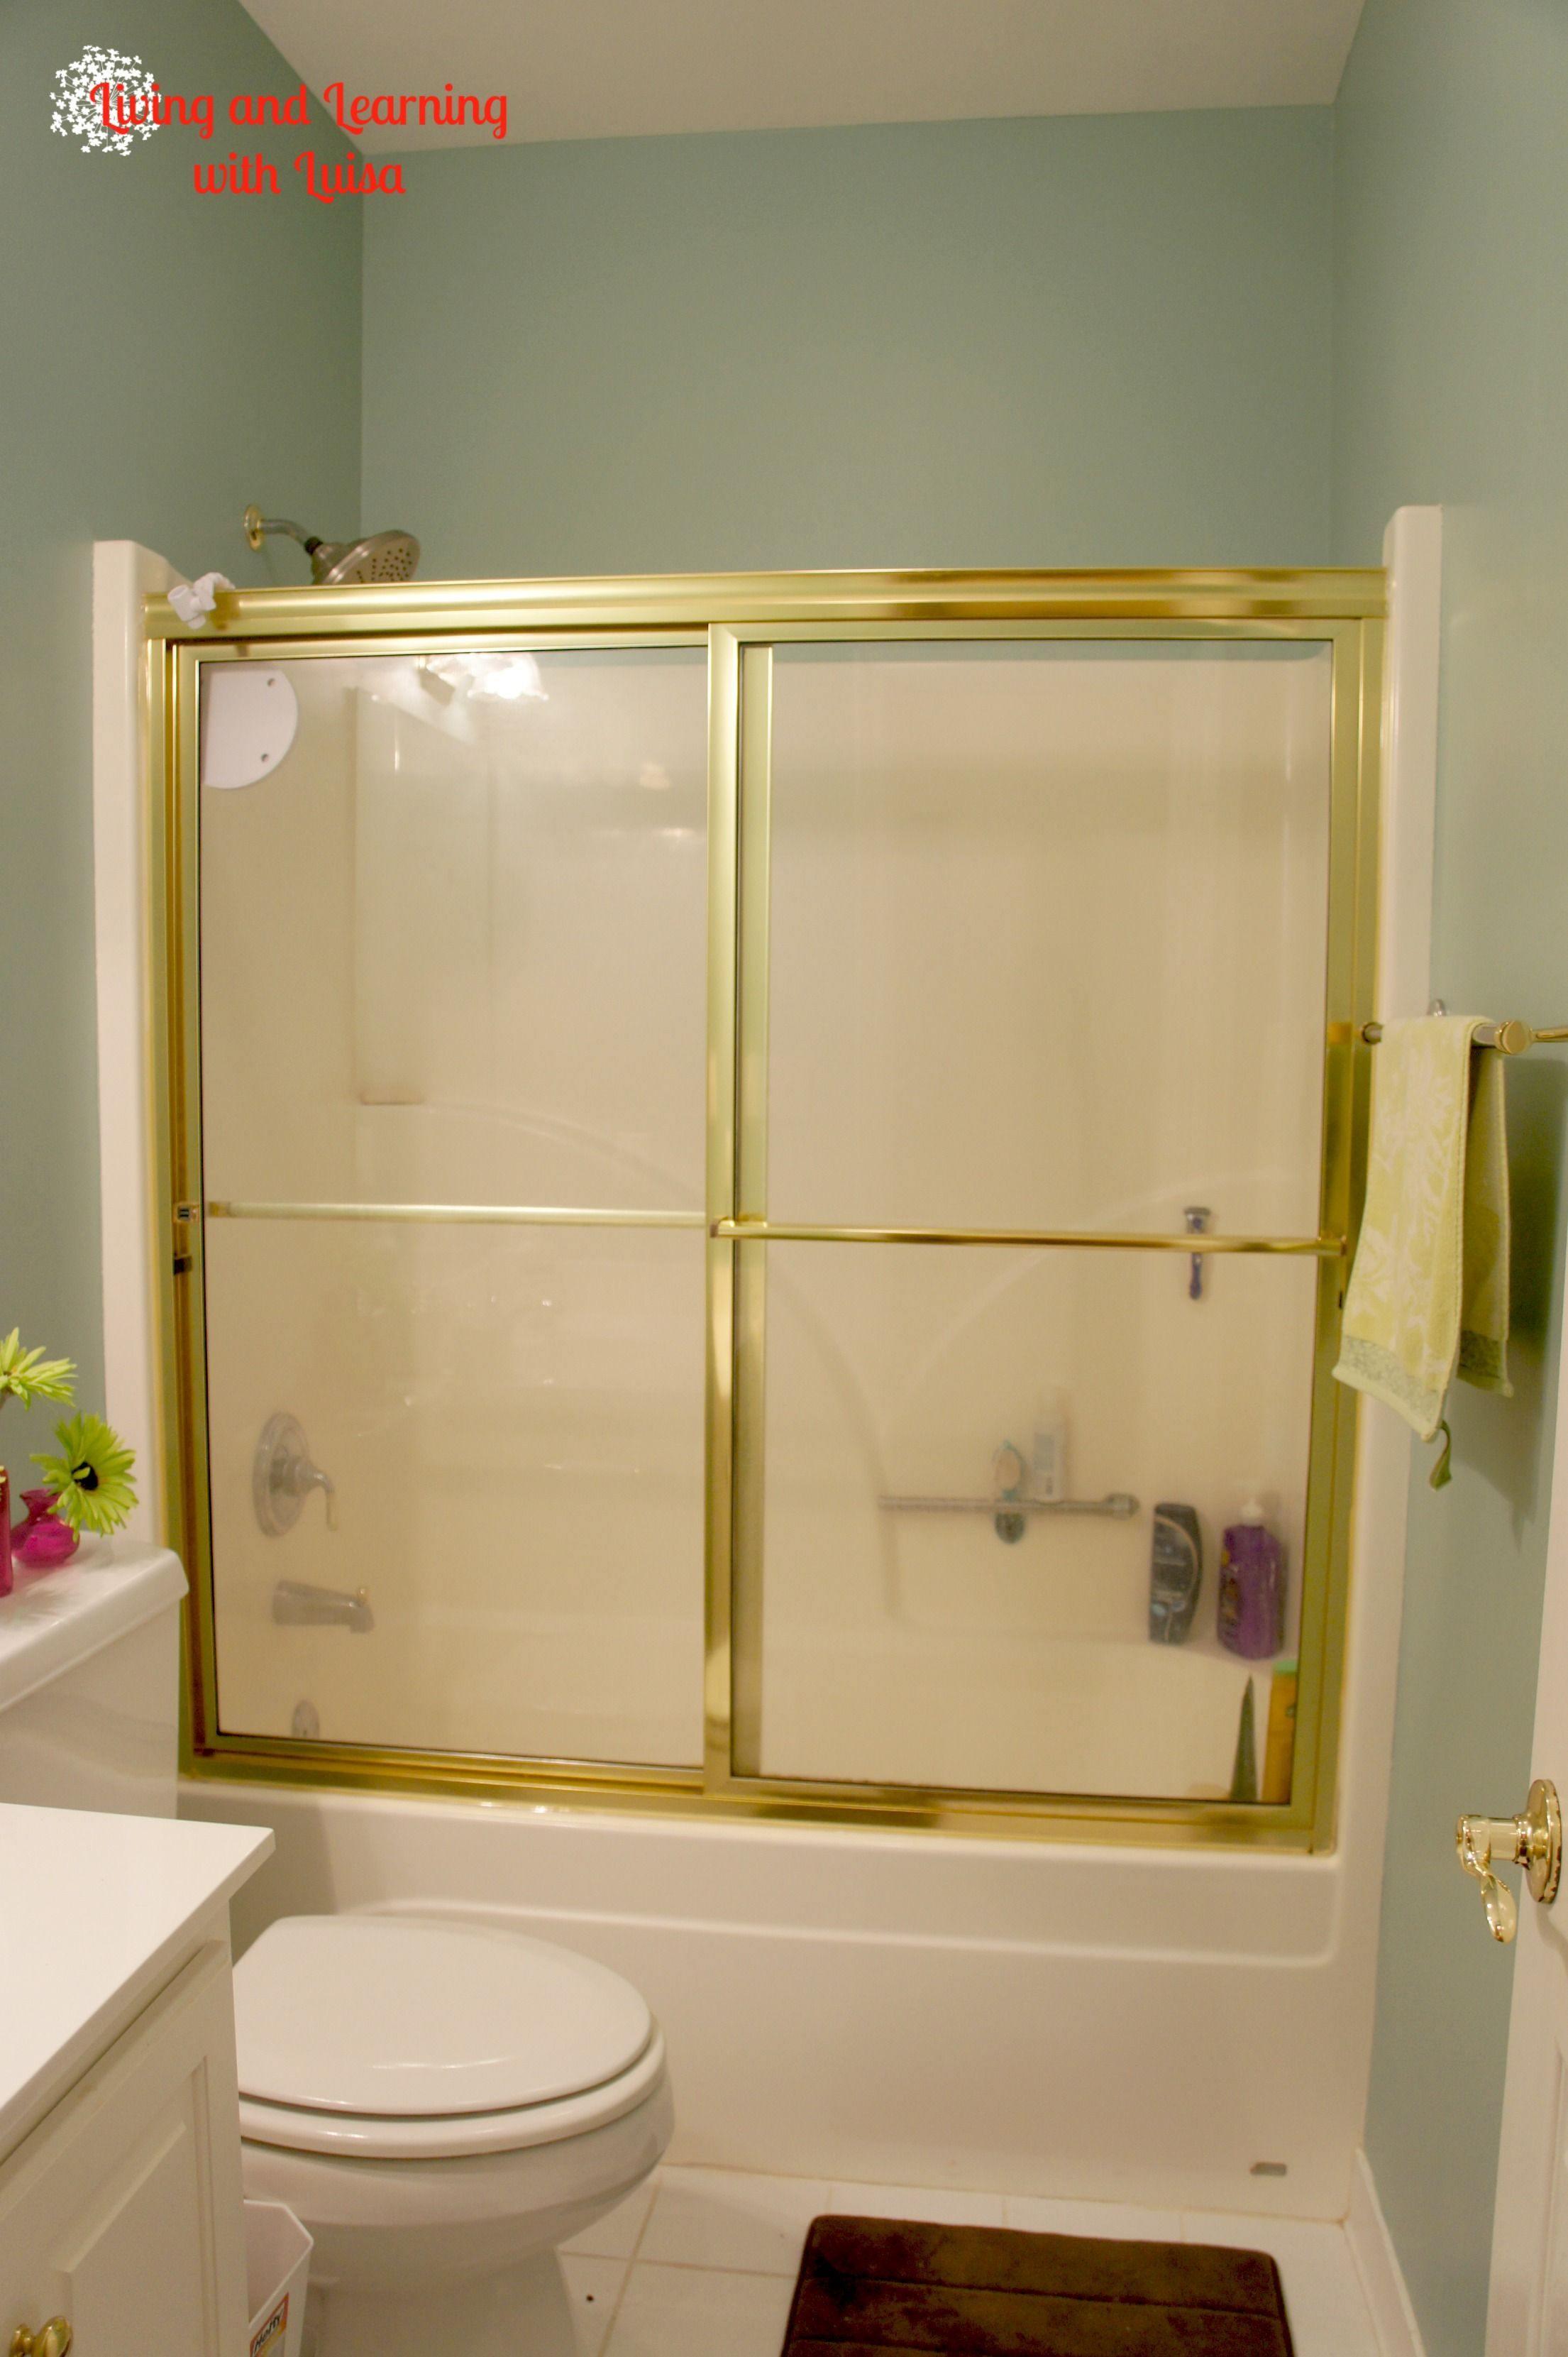 Shower Doors Be Gone Step By Step Guide To Removing Shower